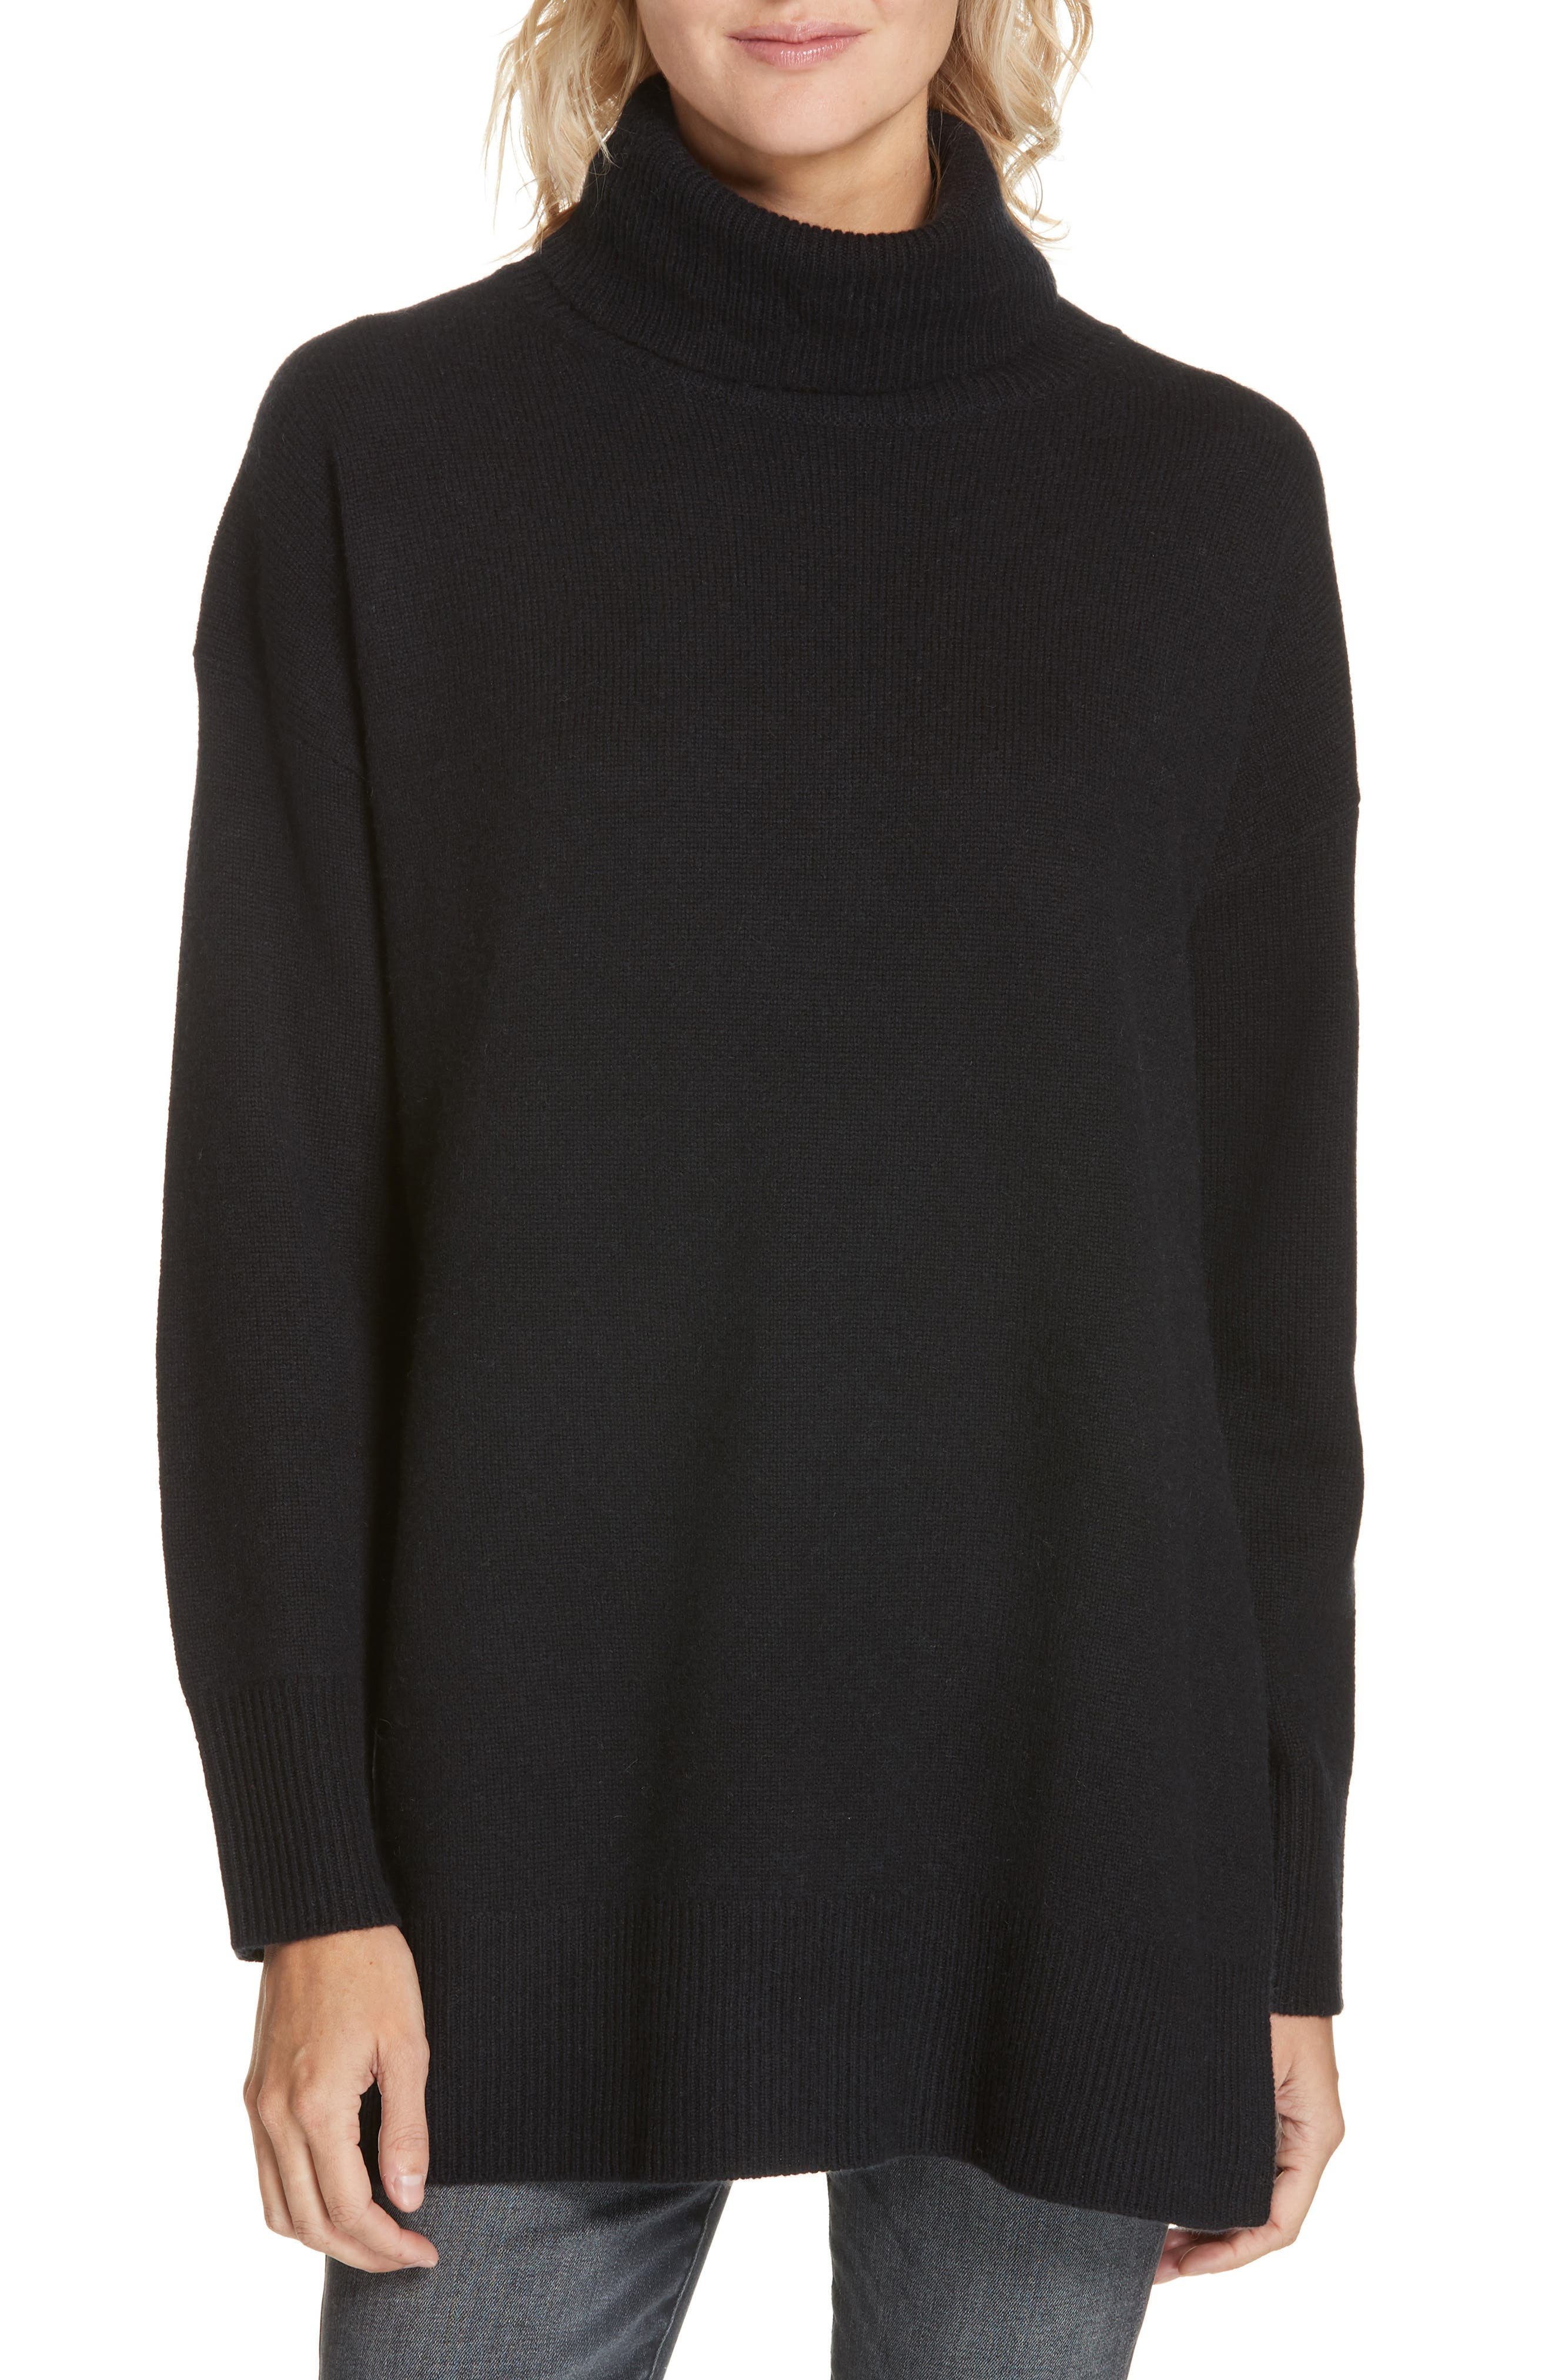 NORDSTROM SIGNATURE Cashmere Turtleneck Pullover, Main, color, 001